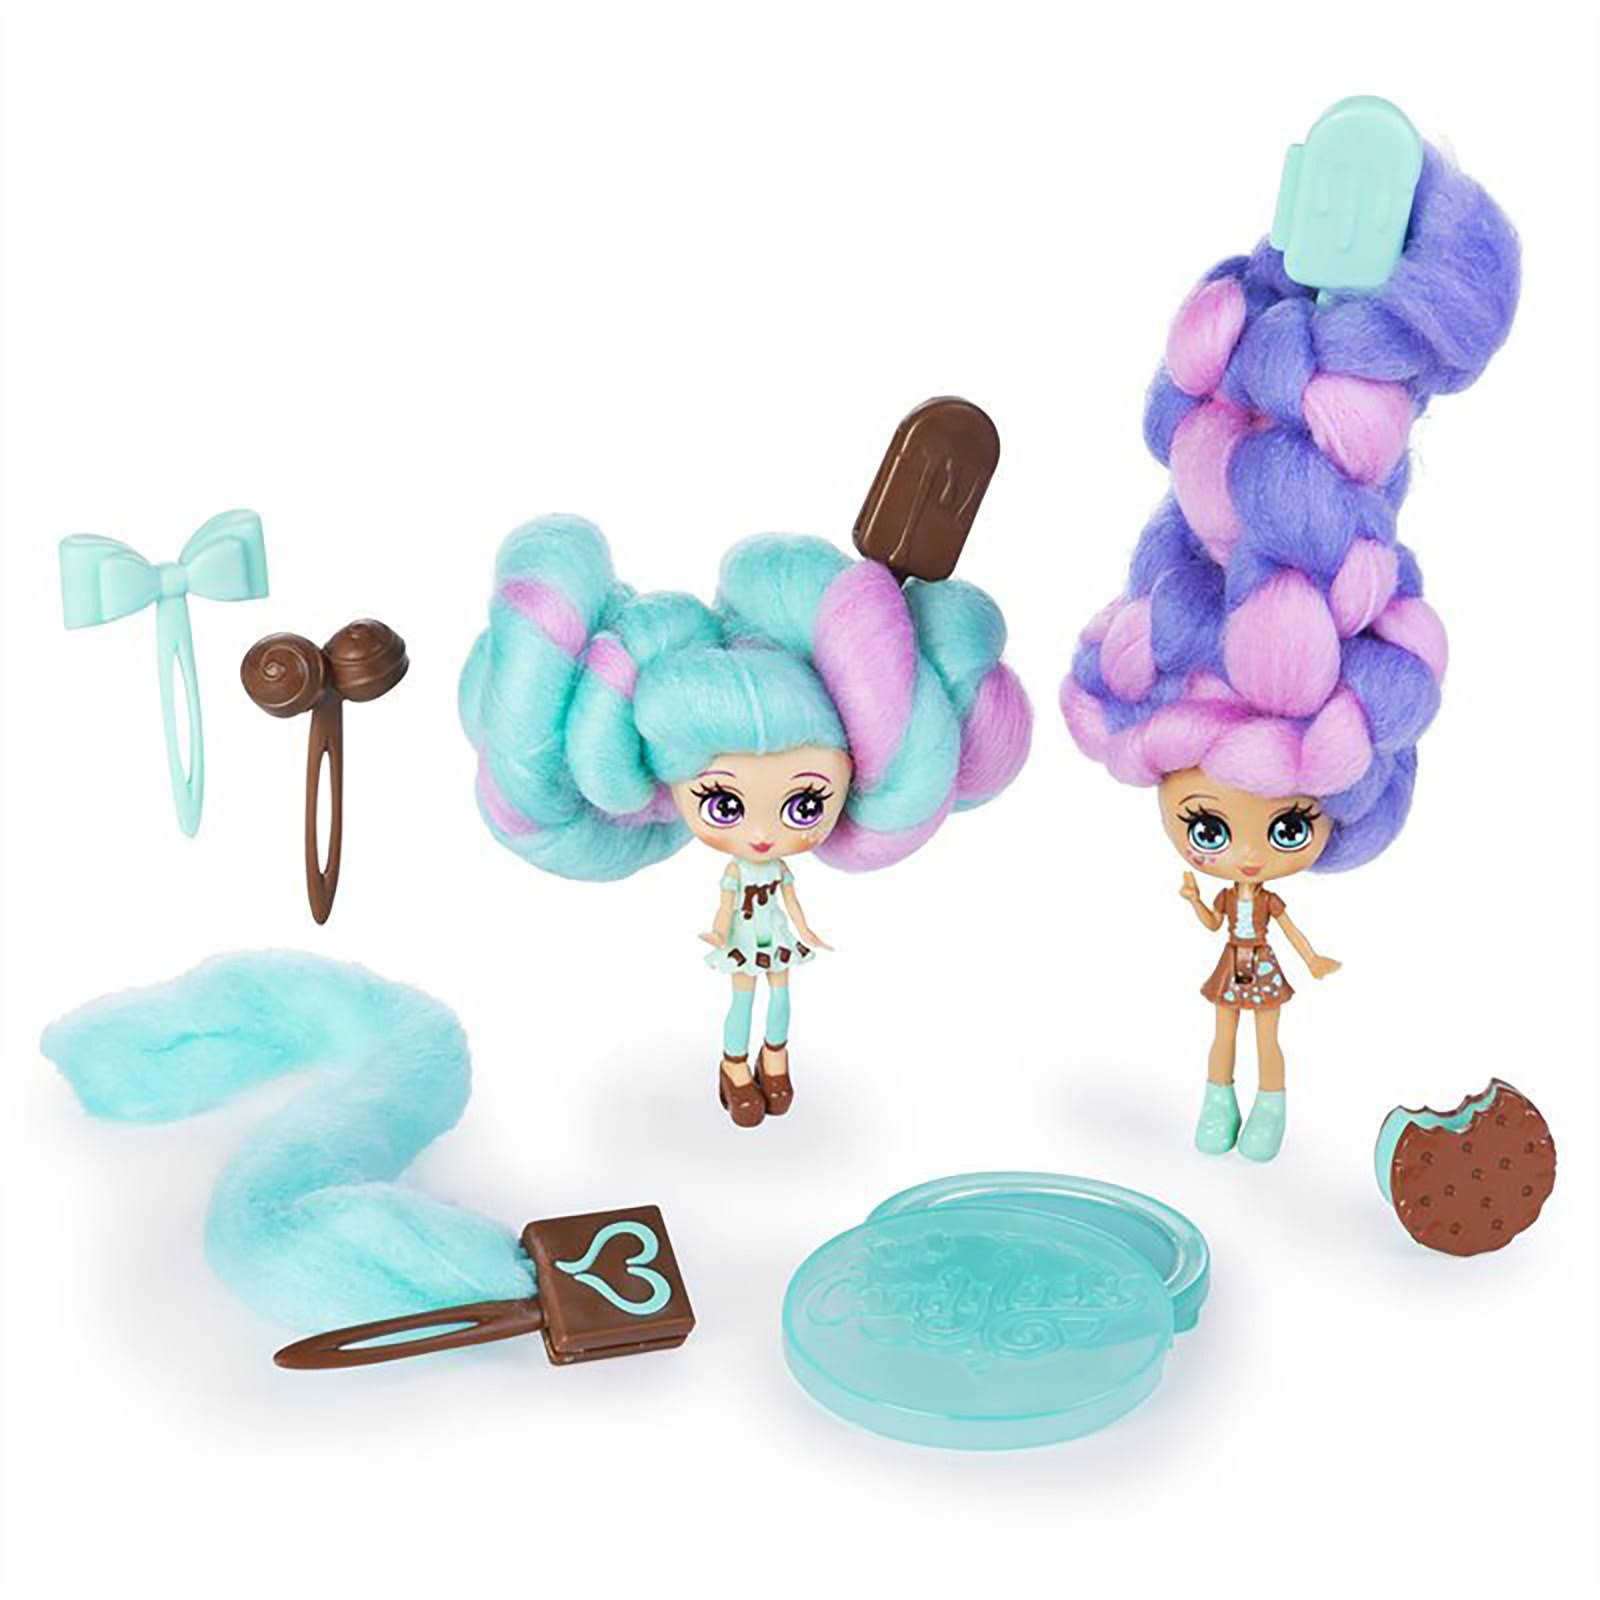 Spinmaster Candylocks, BFF 2 Pack, Mint Choco Chick & Choco Lisa, Scented Collectible Dolls with Accessories